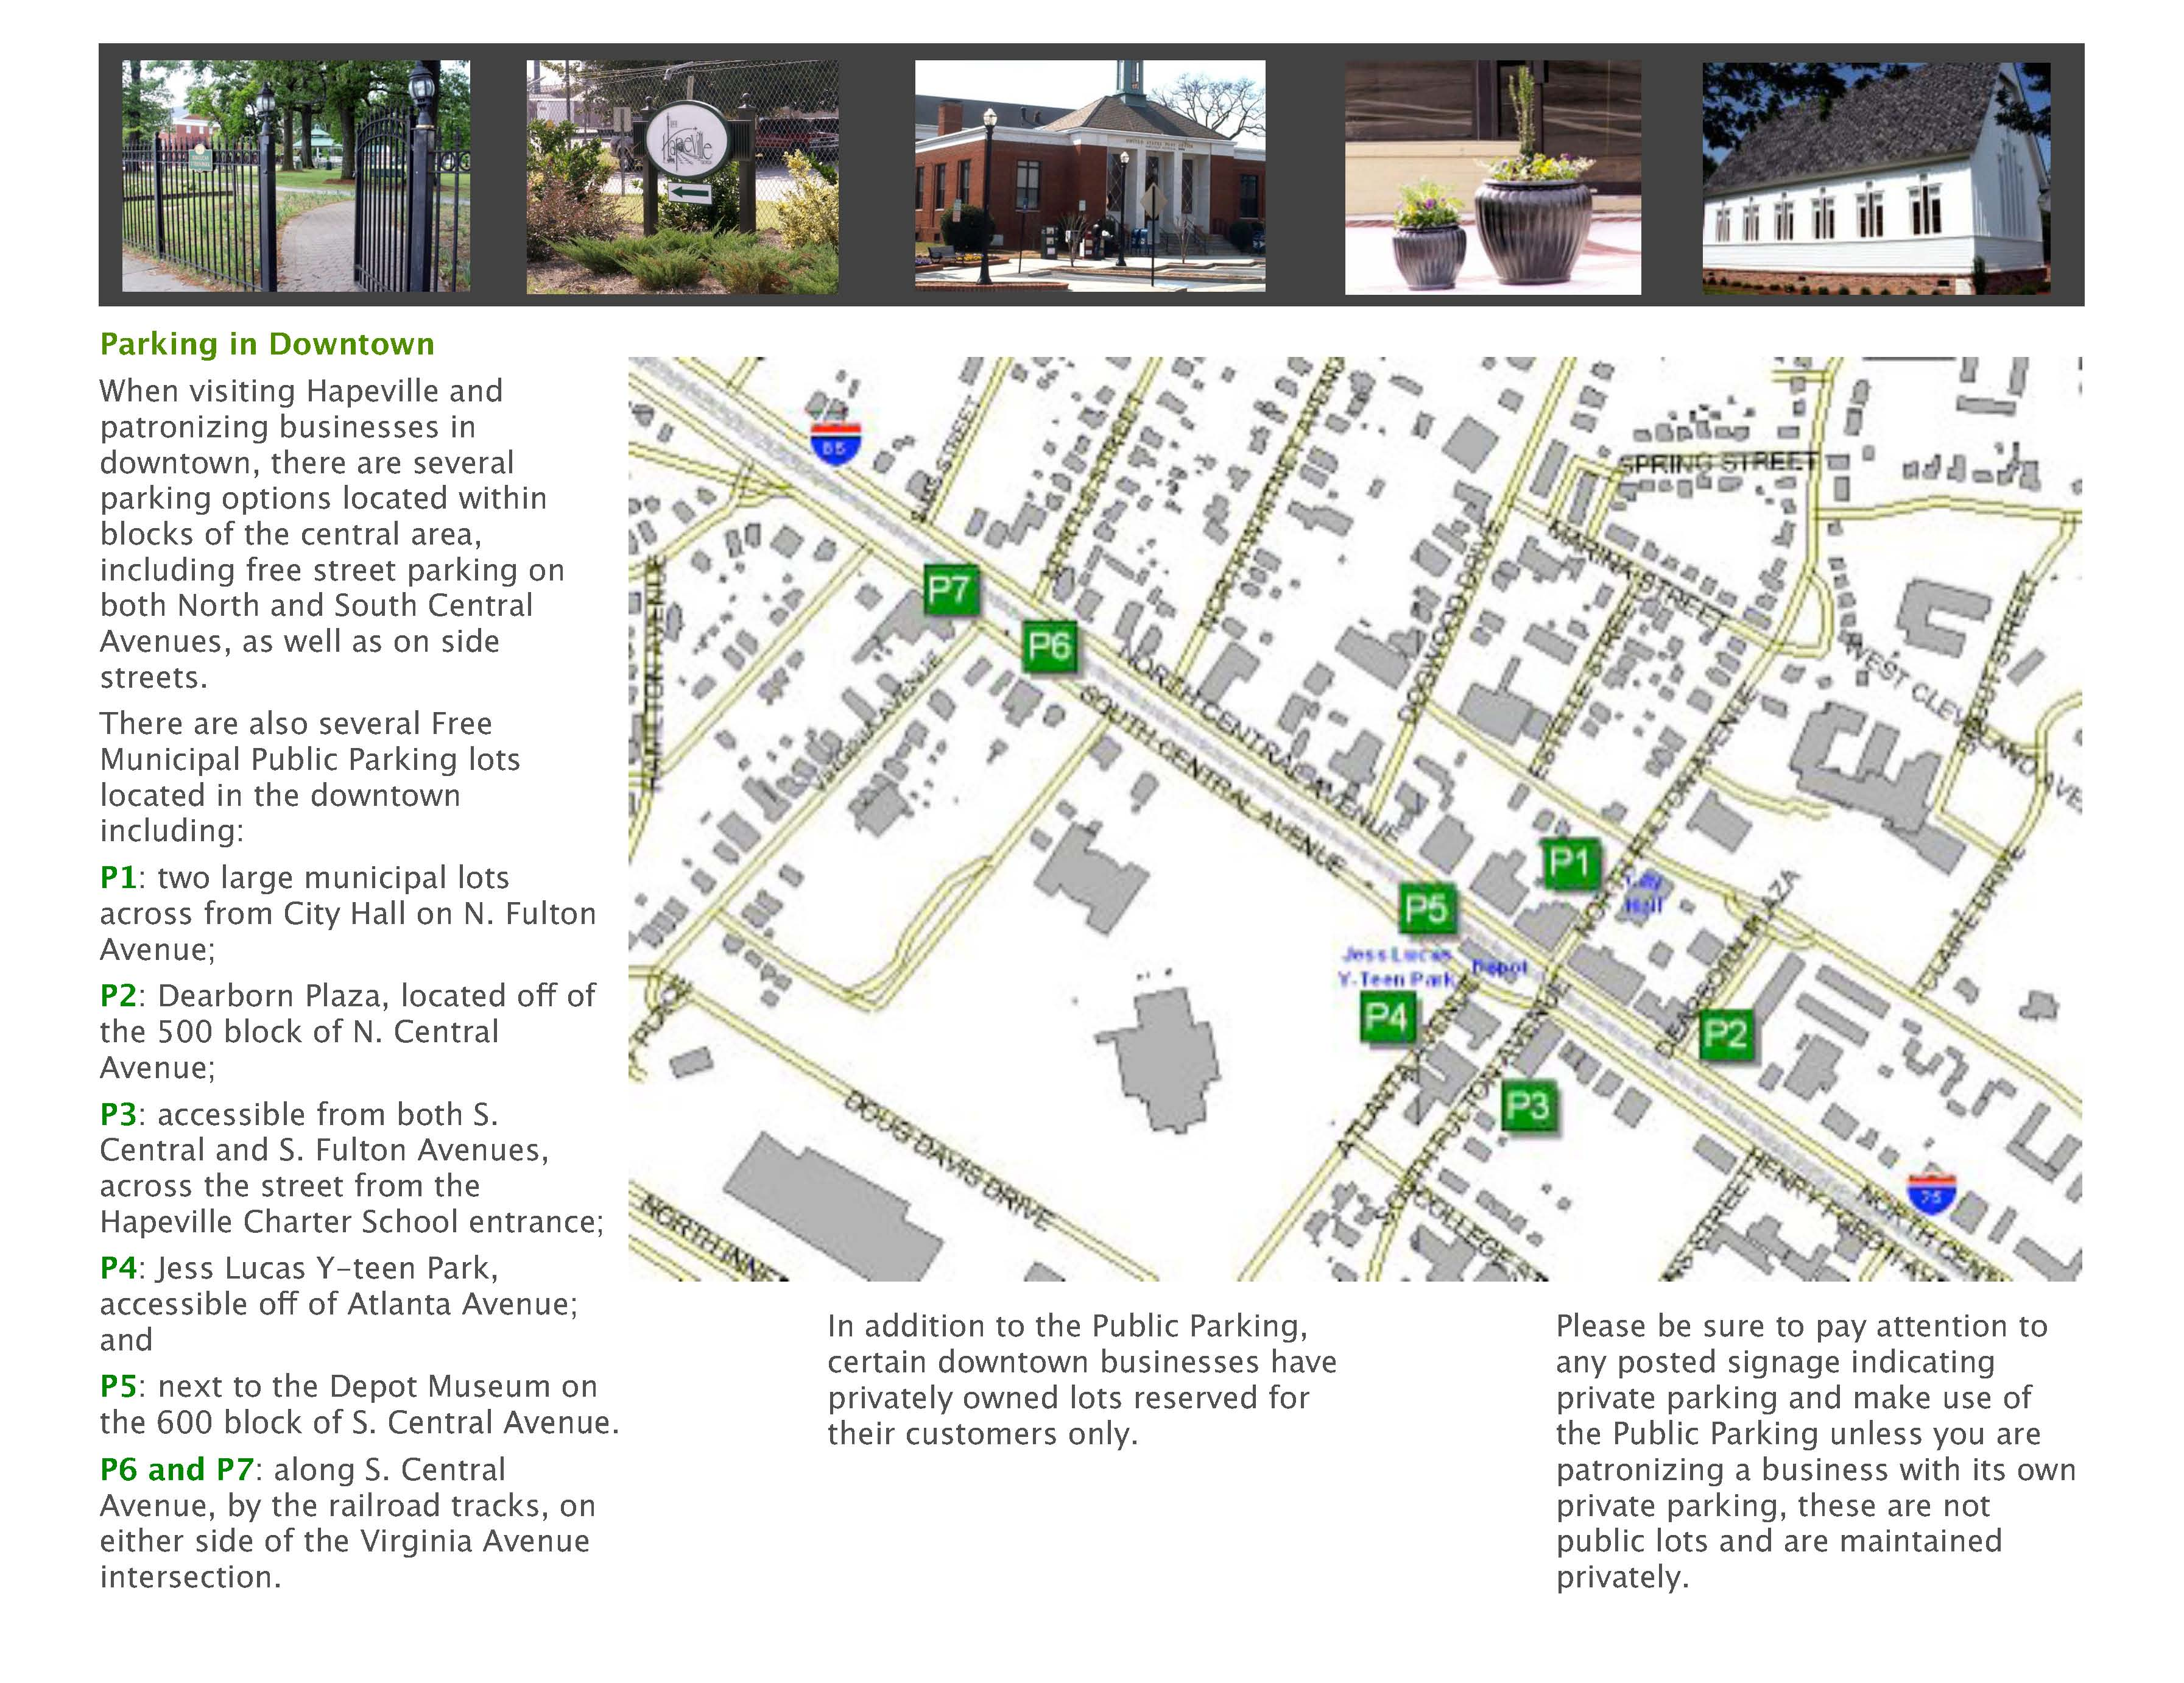 Parking Brochure and Map